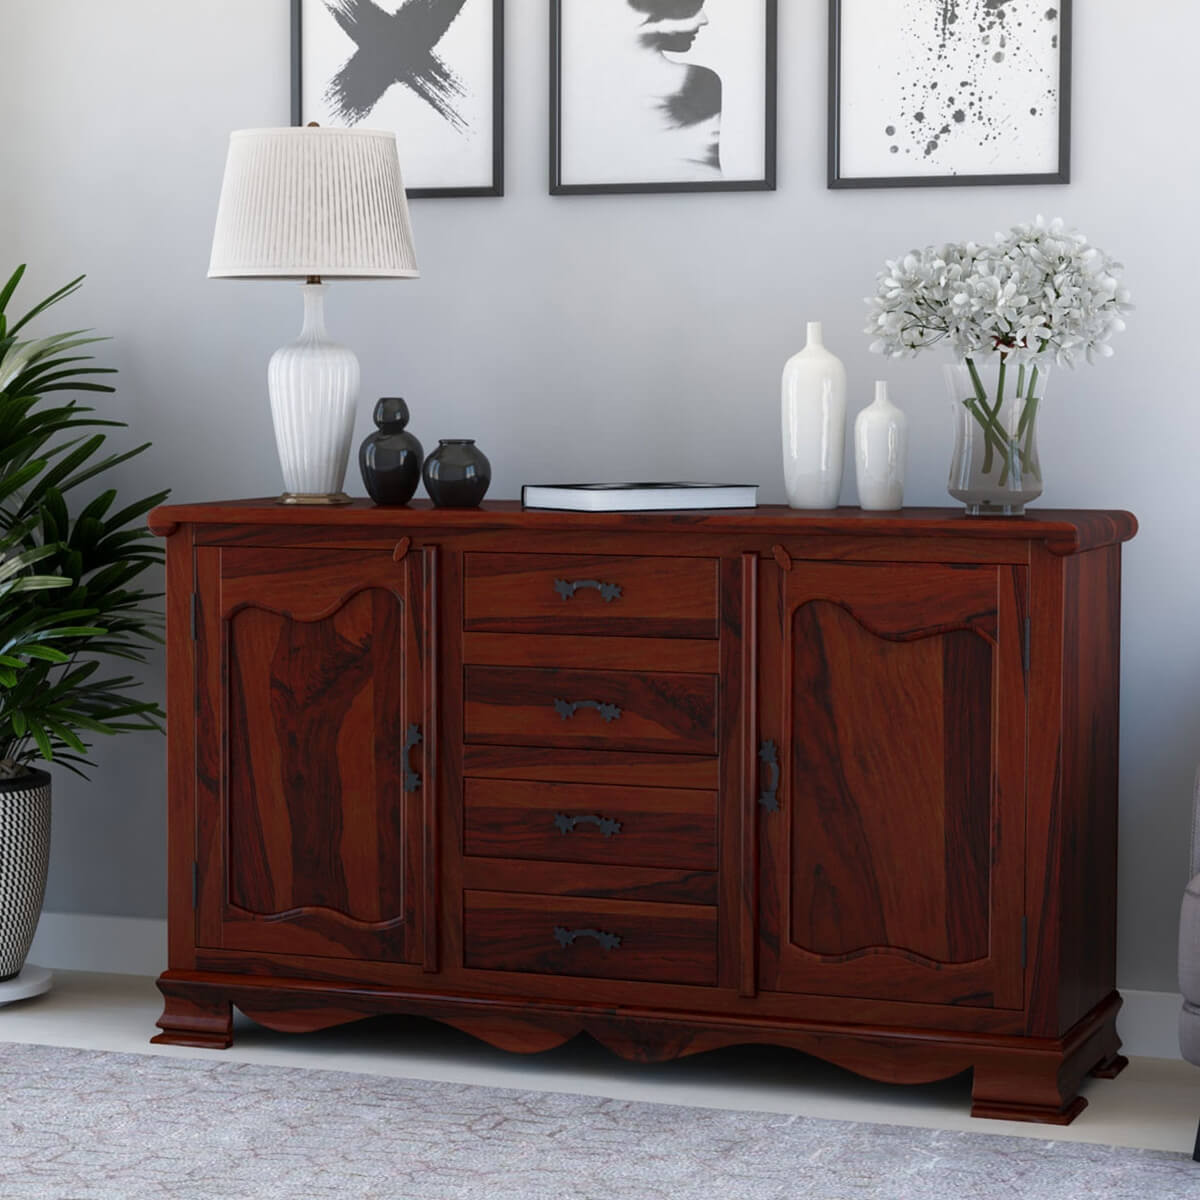 Credenza Dining Room: French Rustic Solid Wood 4 Drawer Large Sideboard Cabinet